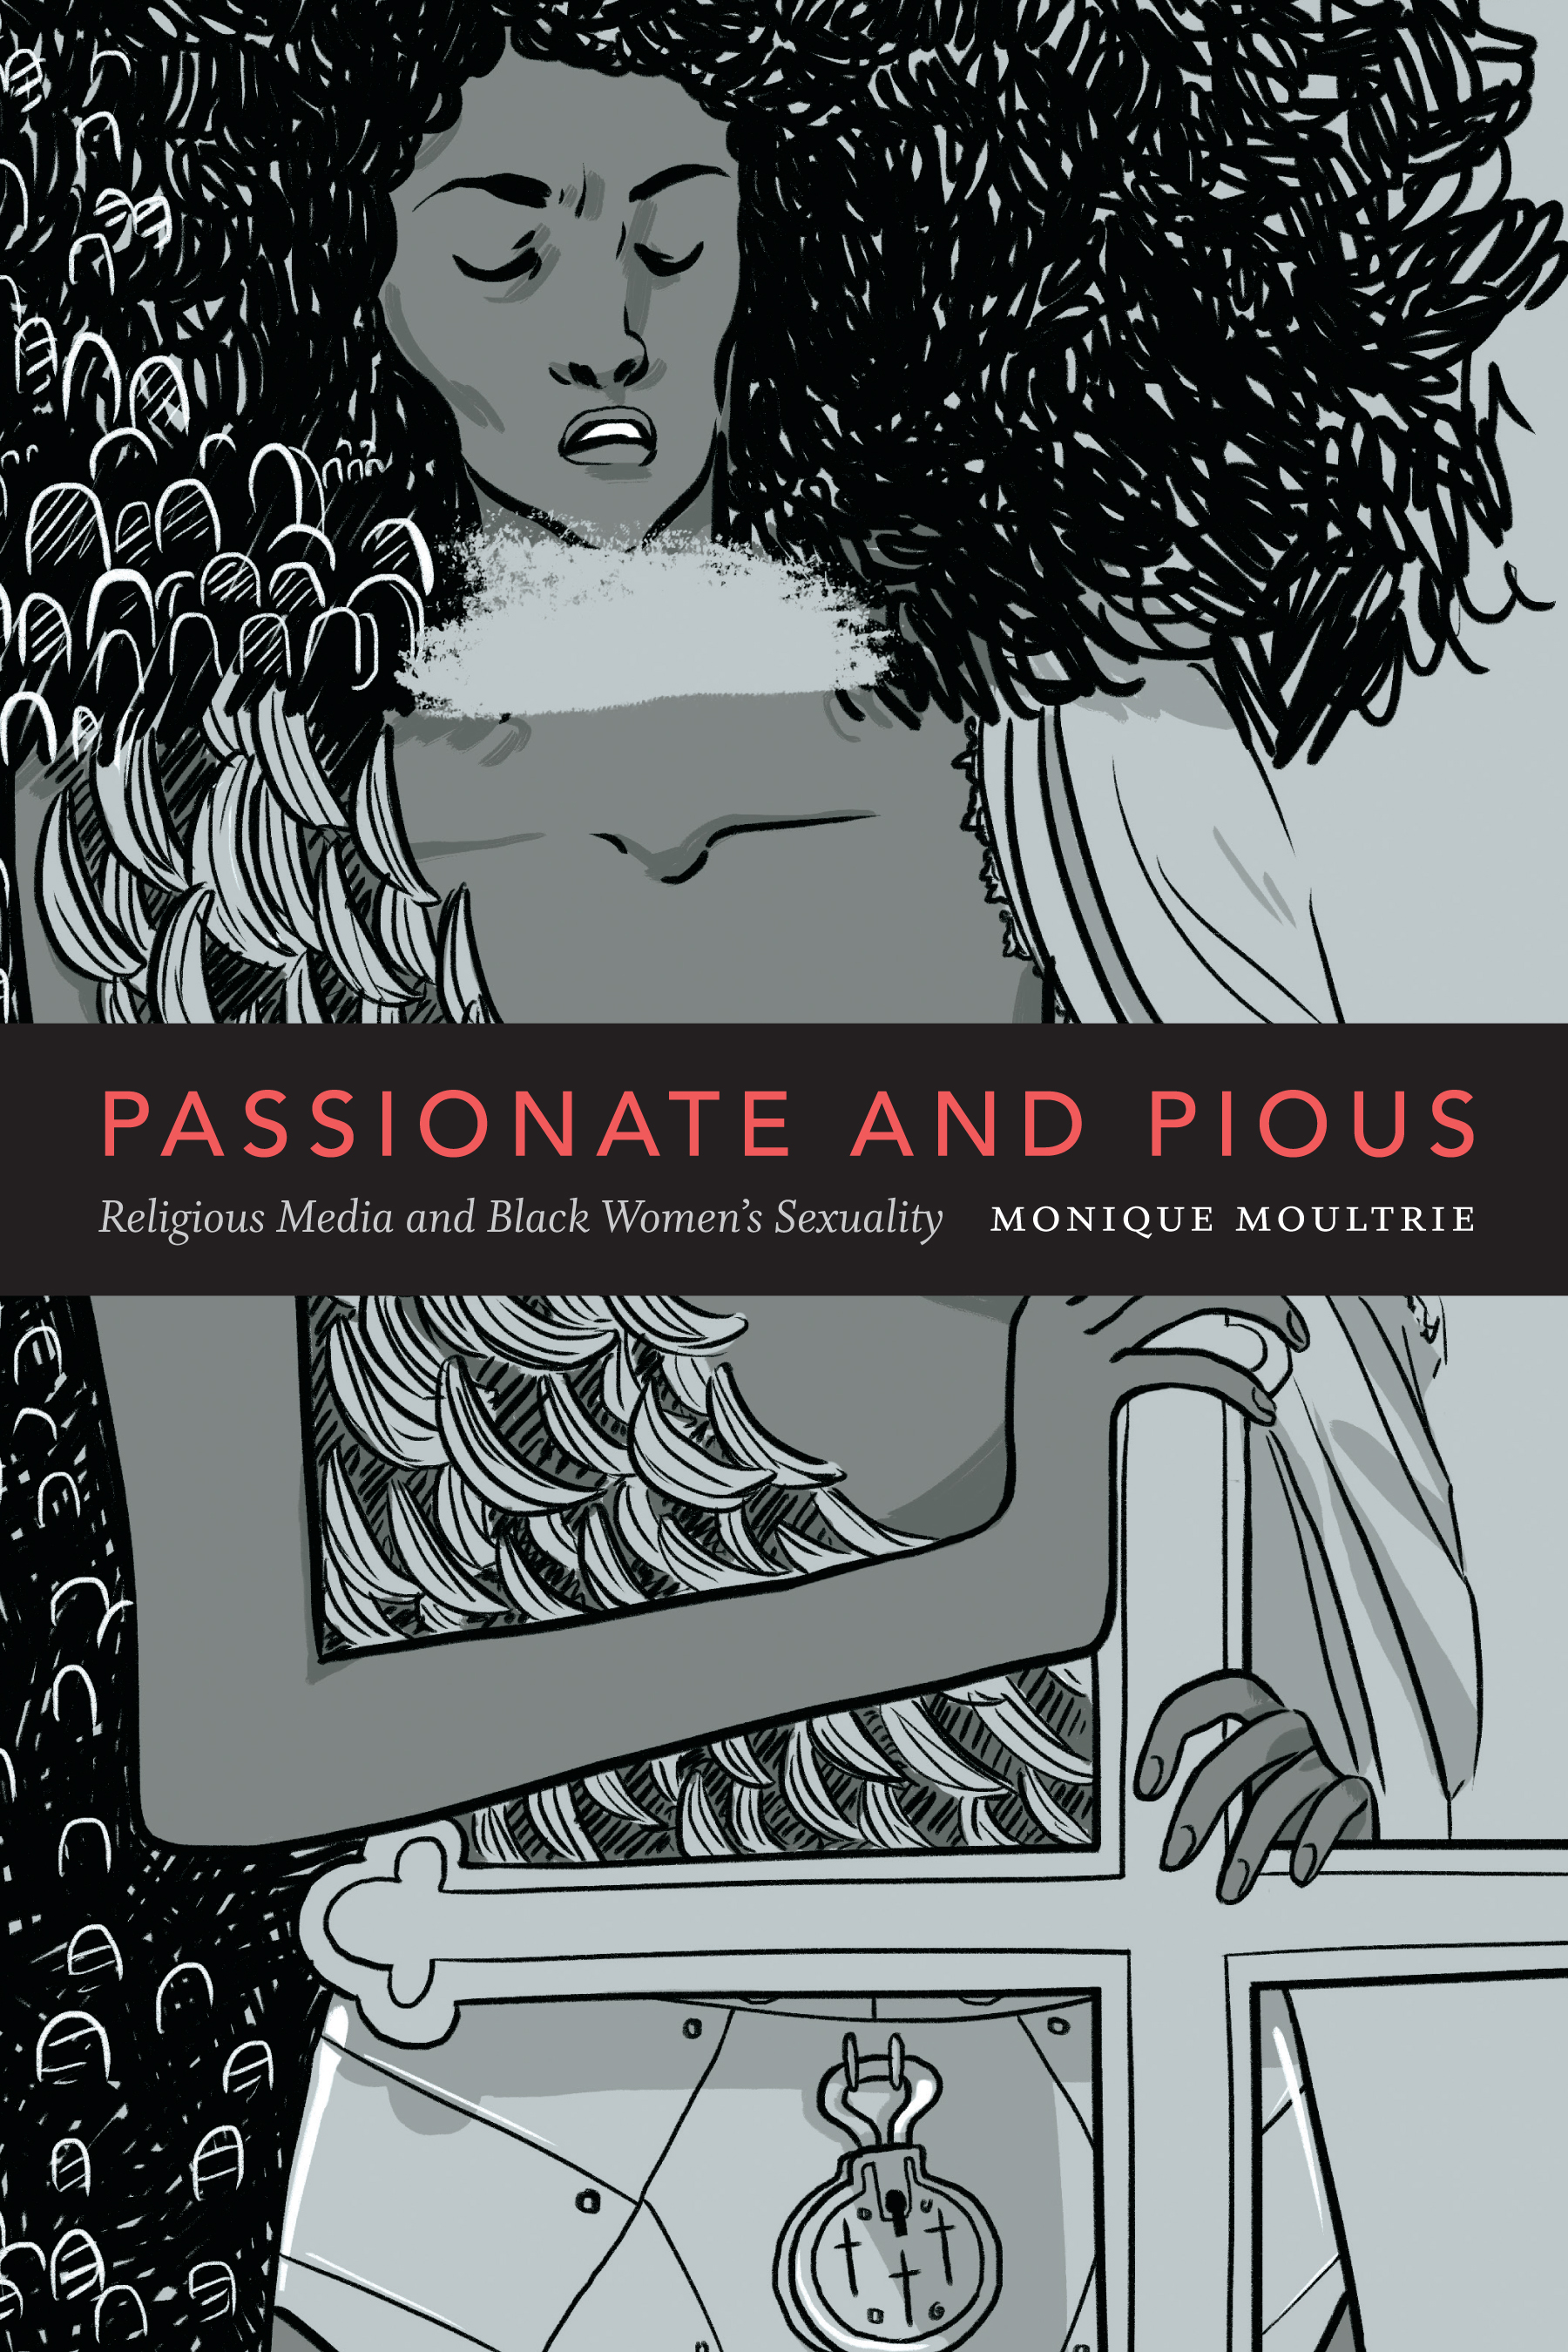 Q&A with Monique Moultrie, author of Passionate and Pious | Duke